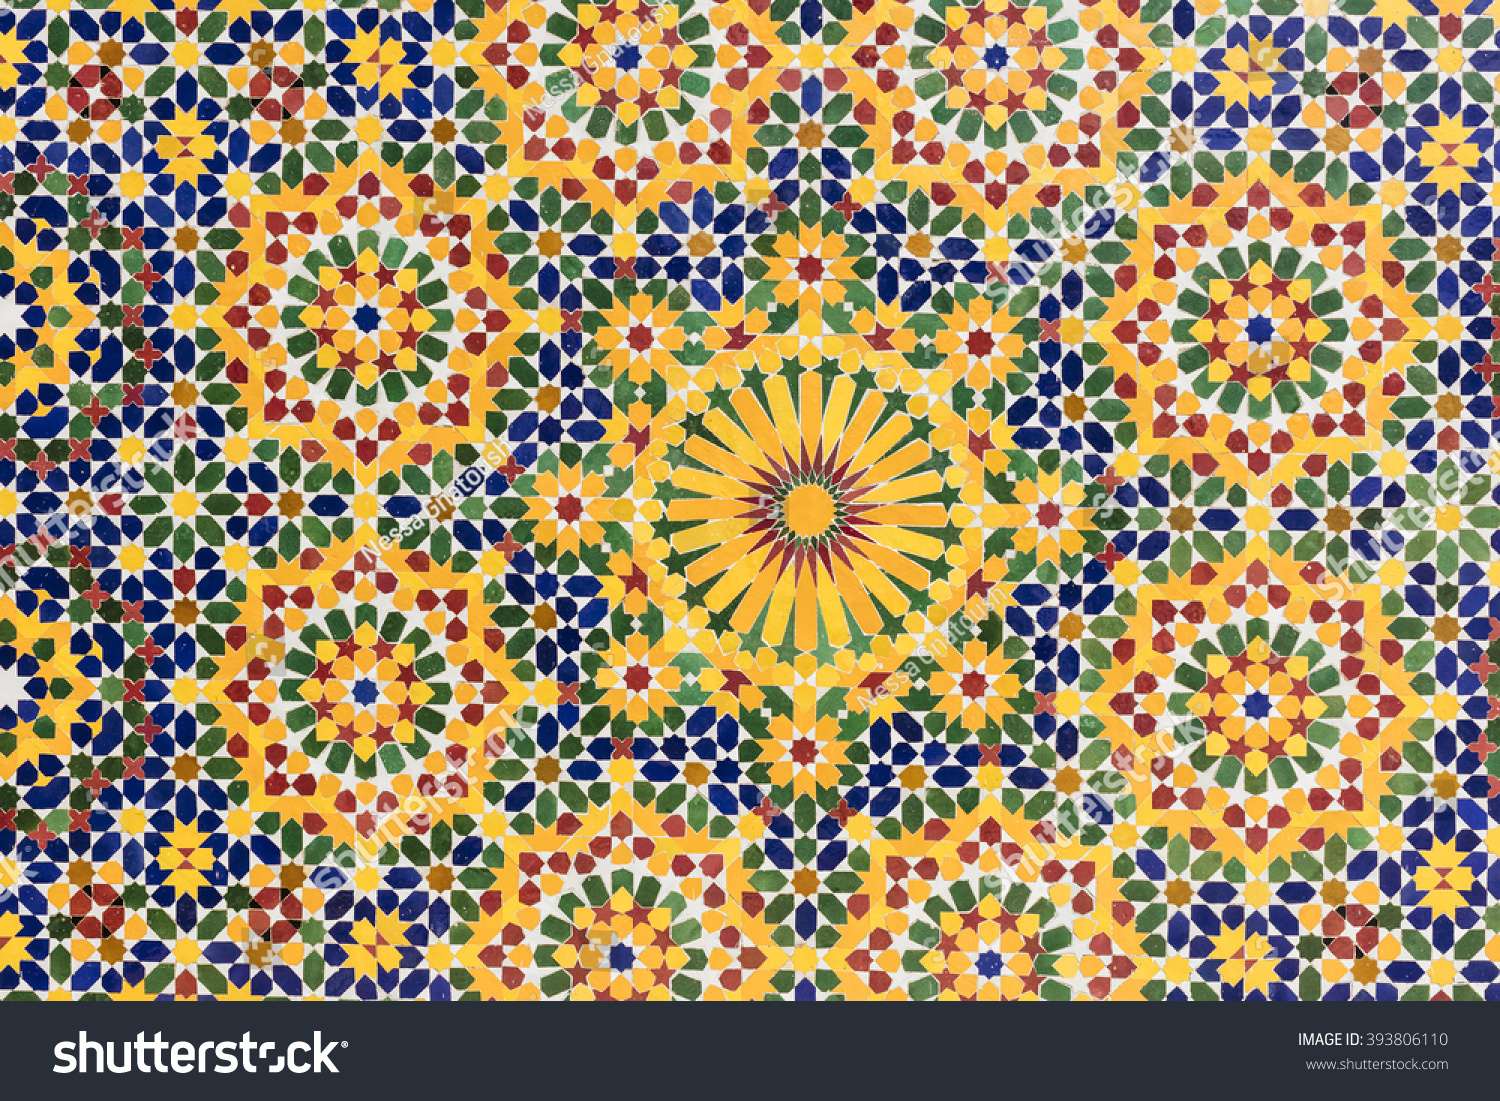 Colorful Tile Pattern Zellige Mosque Wall Stock Photo (Royalty Free ...